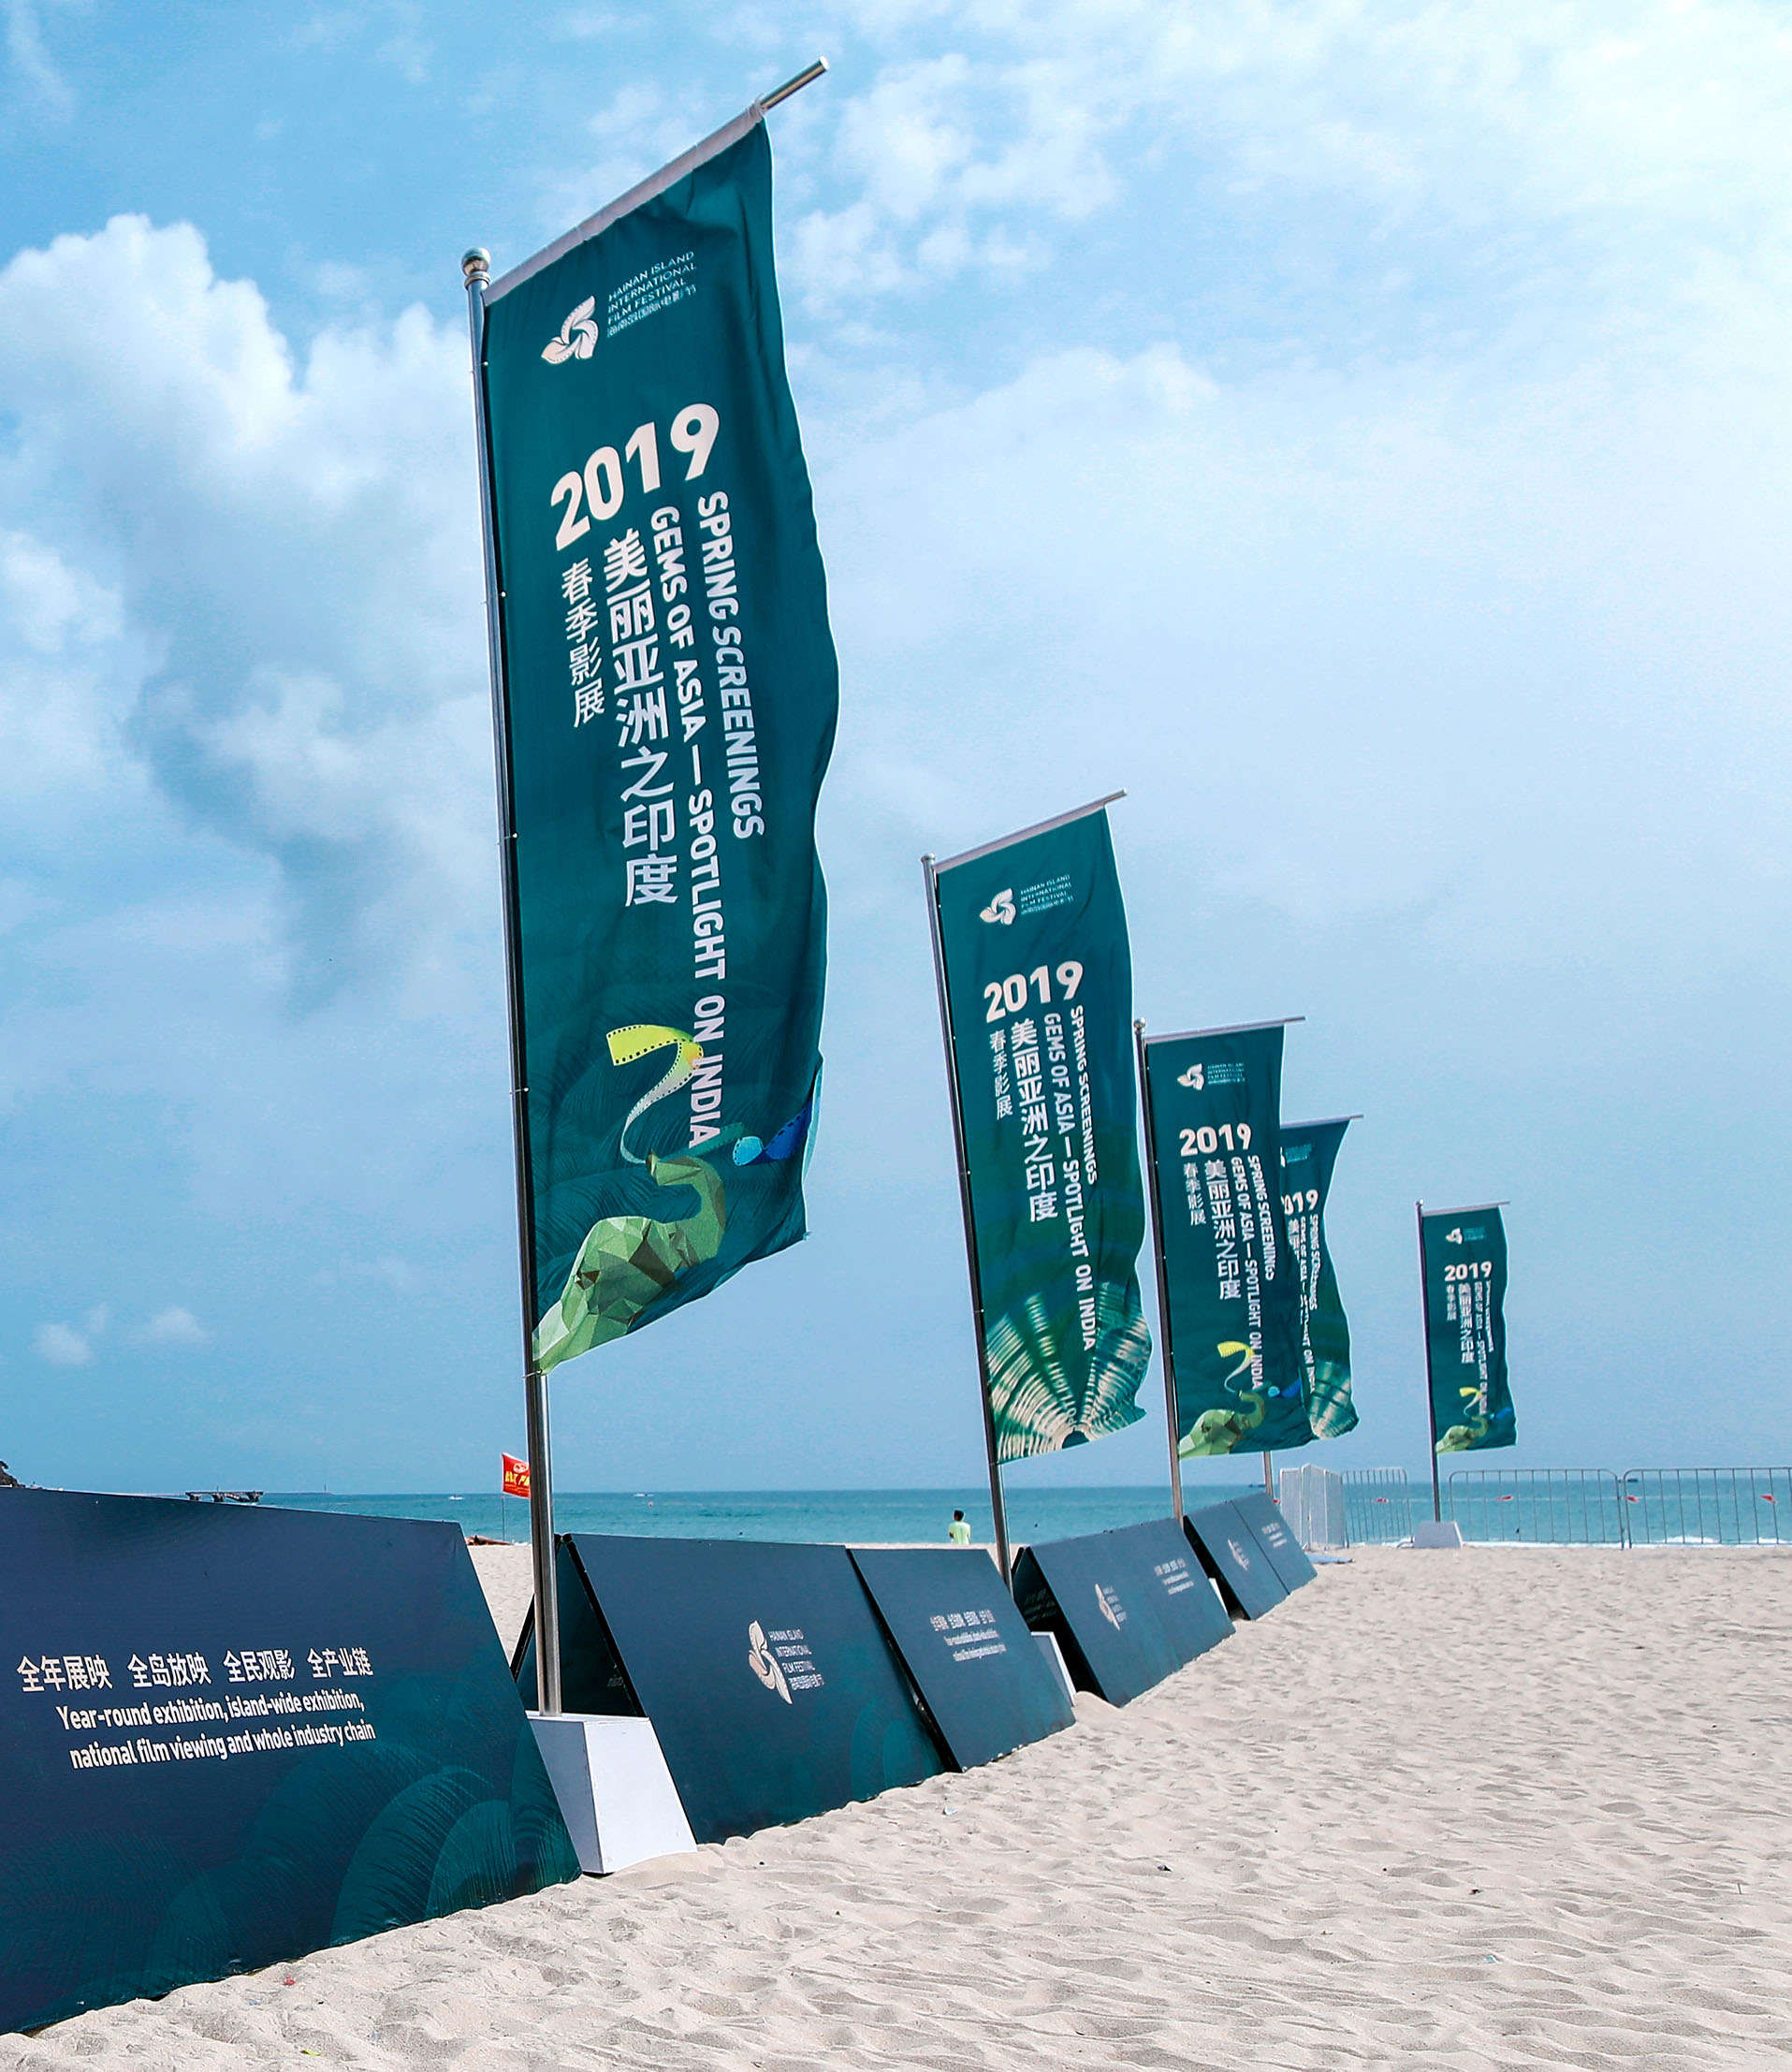 Beachside Venue of Hainan China Indian Film Fest lo